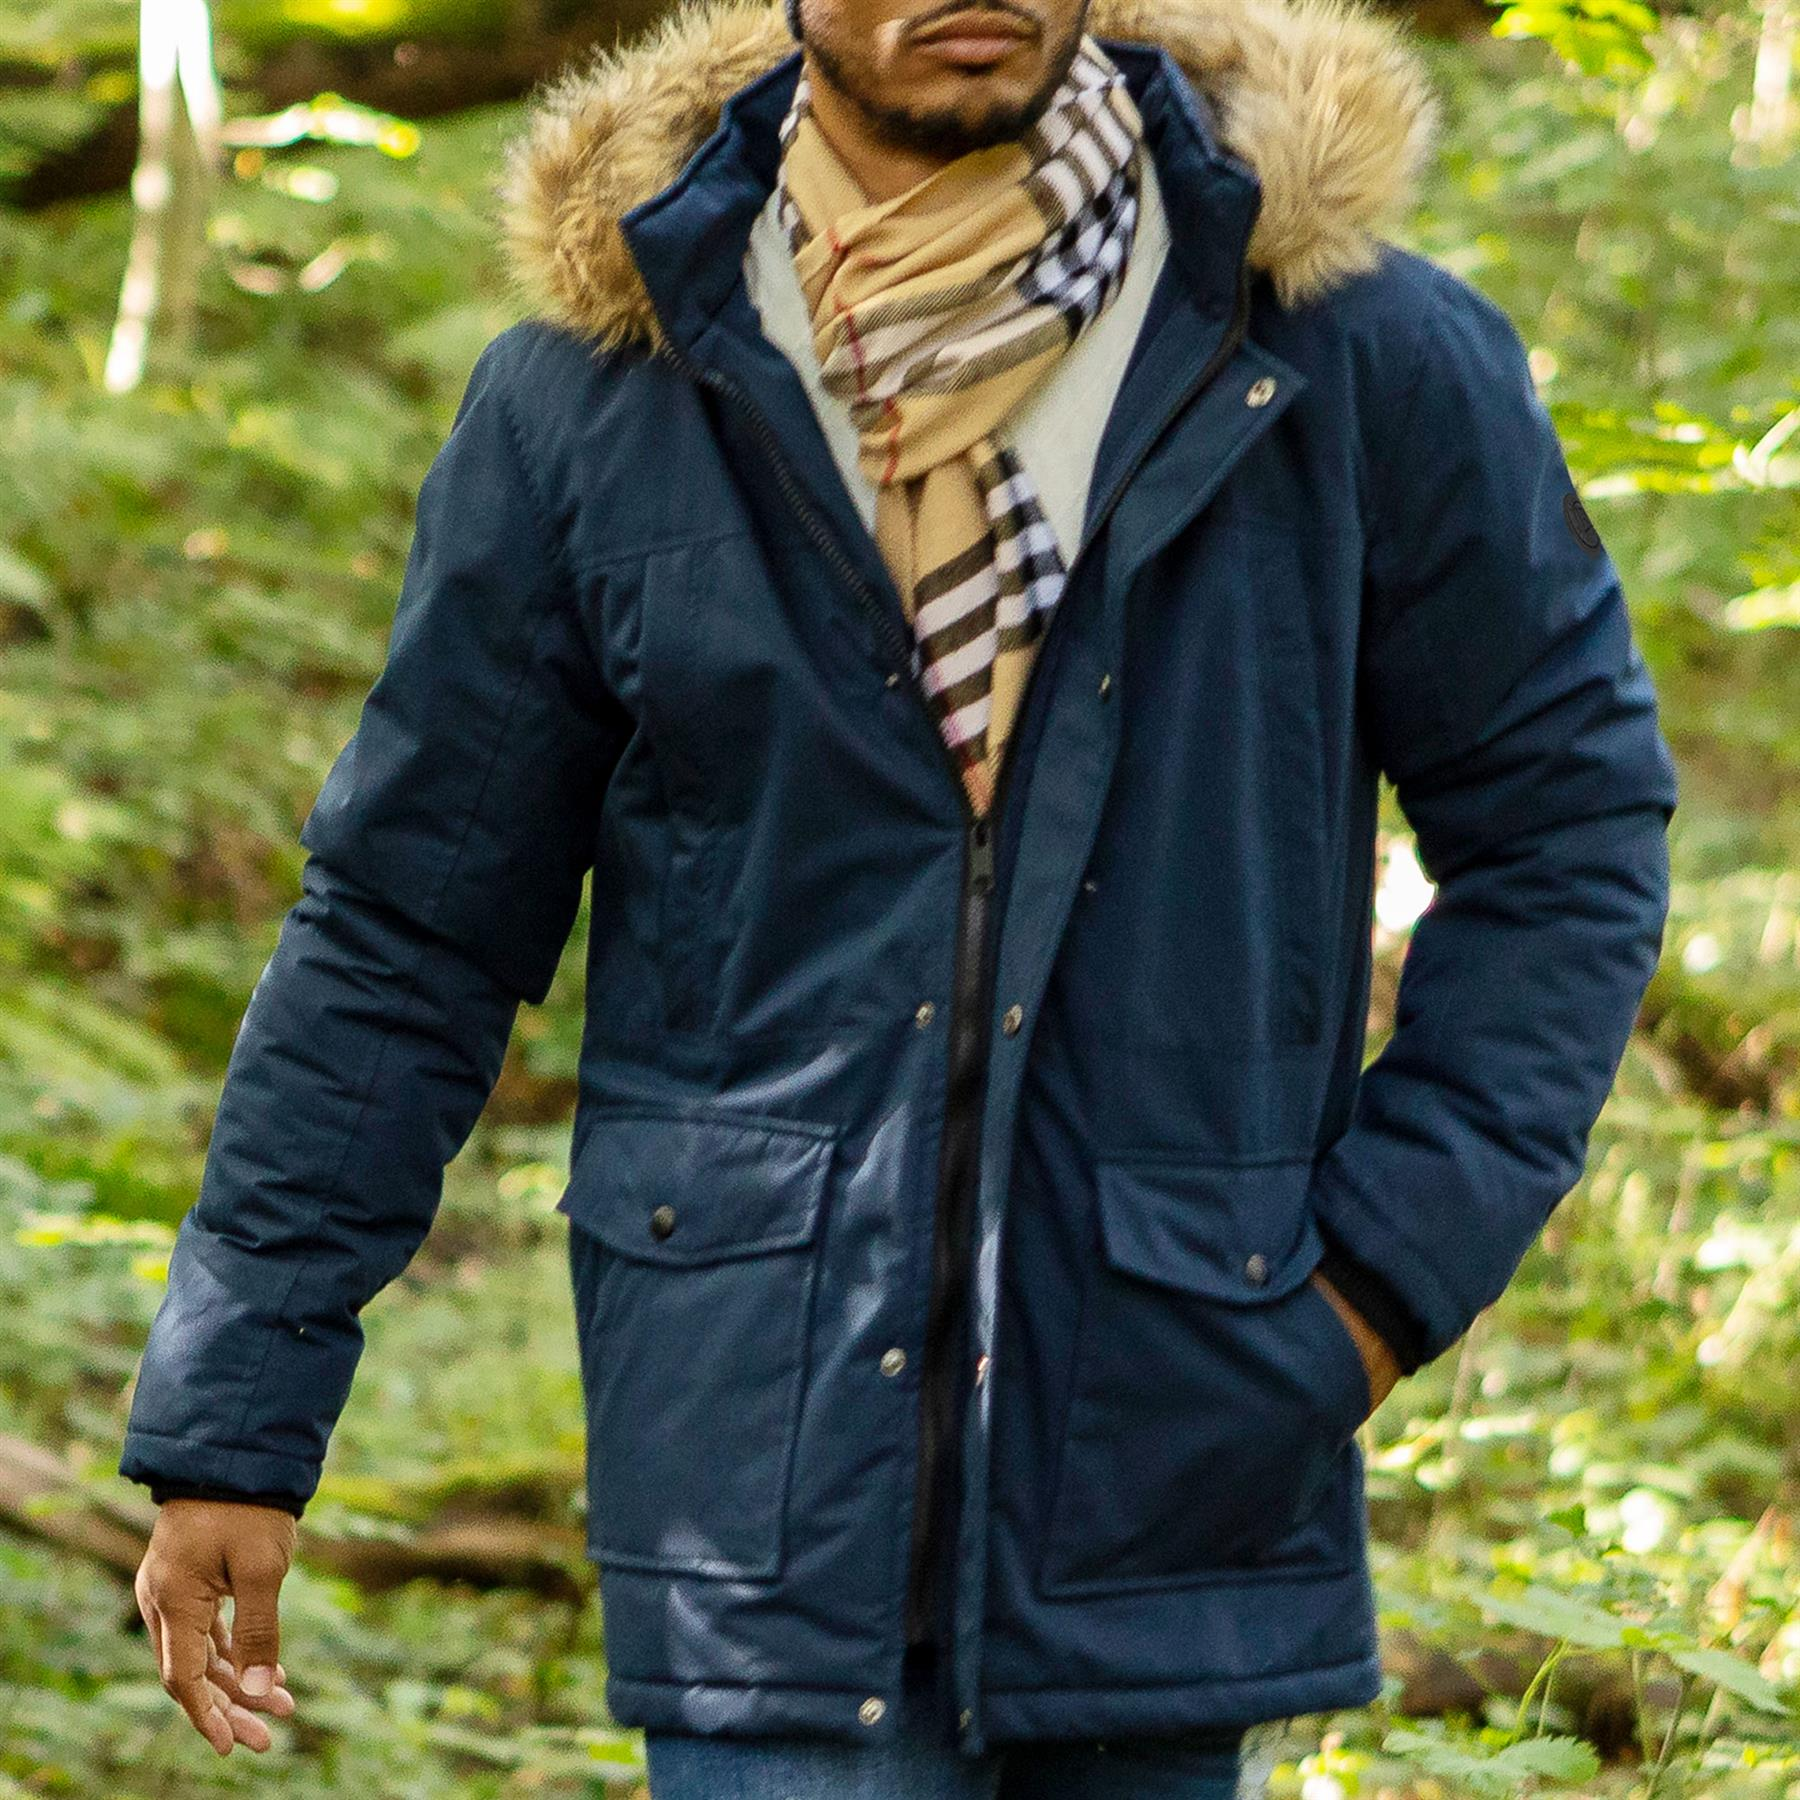 Mens-Parka-Jacket-Faux-Fur-Trimmed-Hooded-Winter-Warm-Long-Padded-Outerwear-Coat thumbnail 8